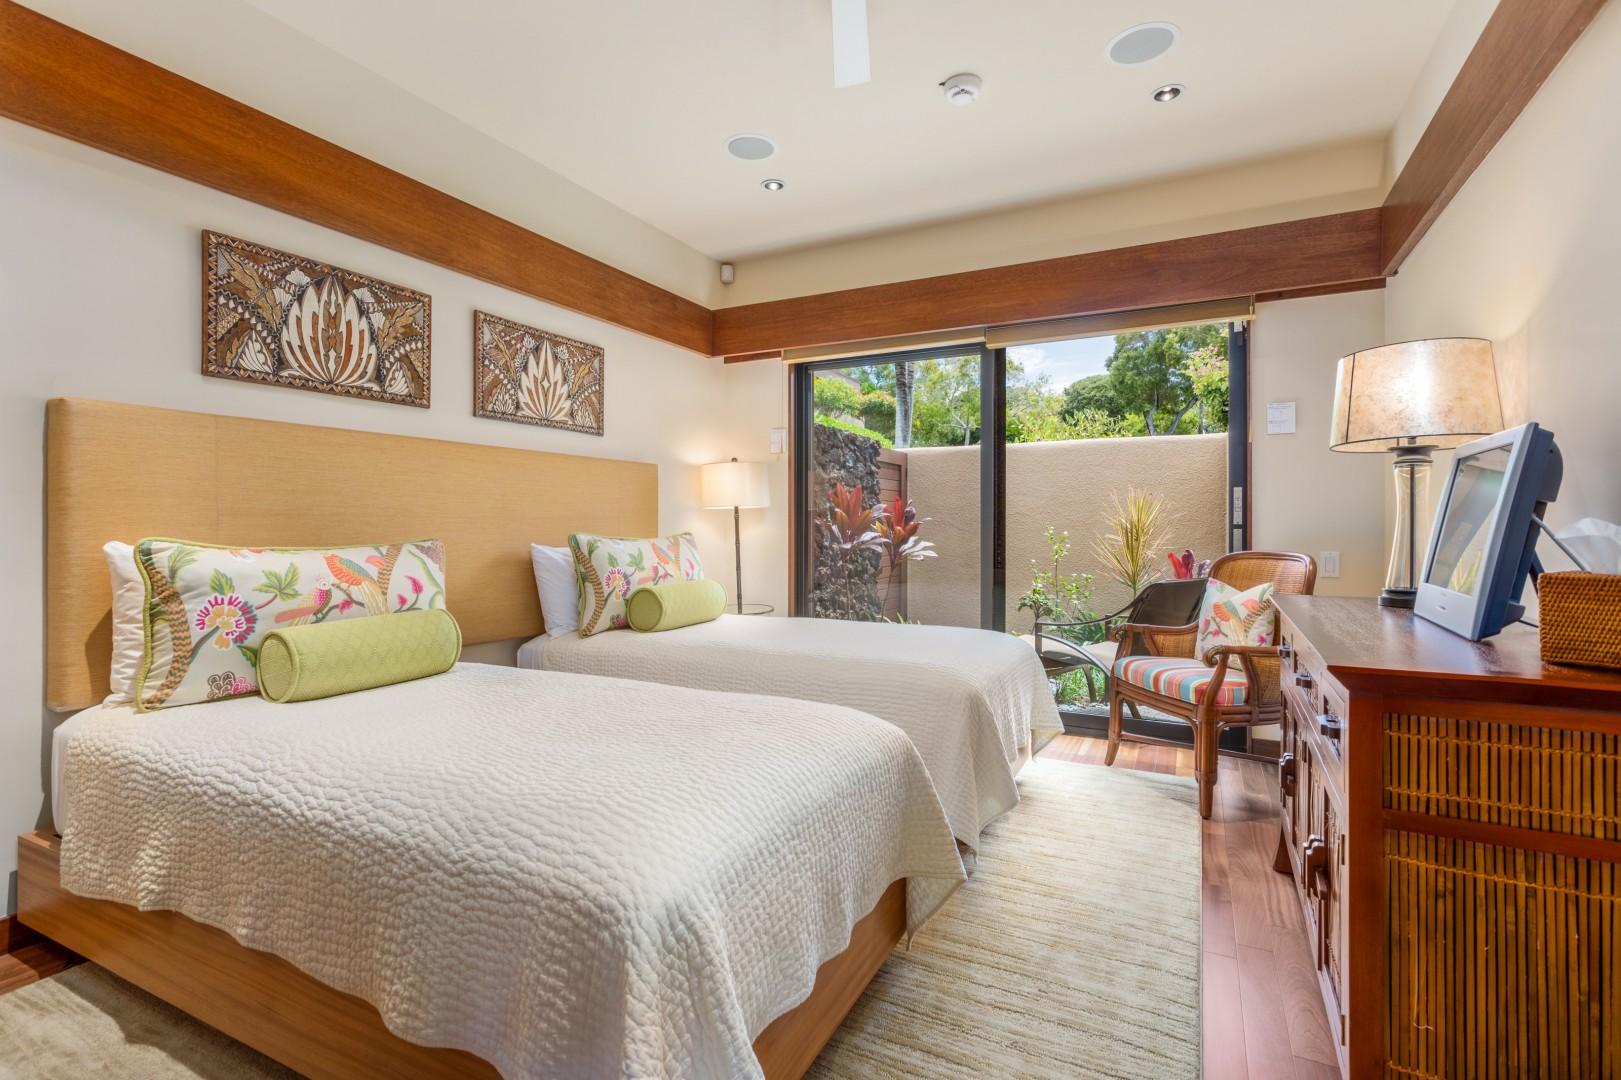 Second Bedroom w/Two Twin Beds (can convert to King upon request), Flat Screen TV & Sliding Doors to Private Courtyard.